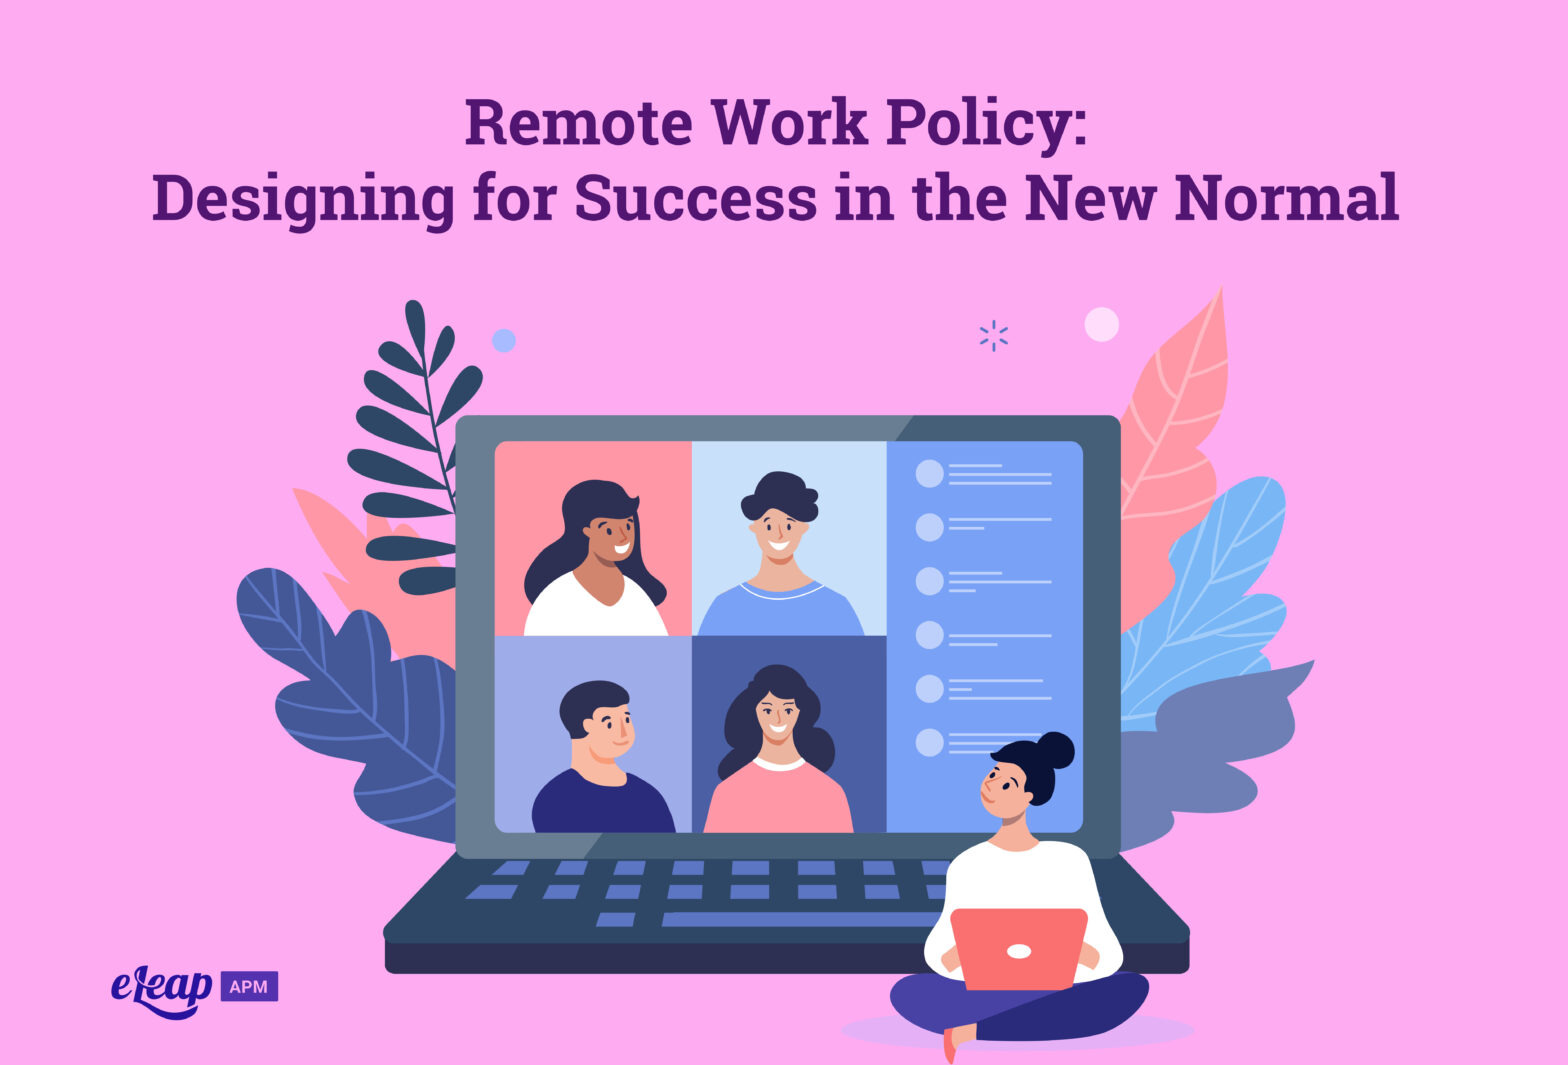 Remote Work Policy: Designing for Success in the New Normal